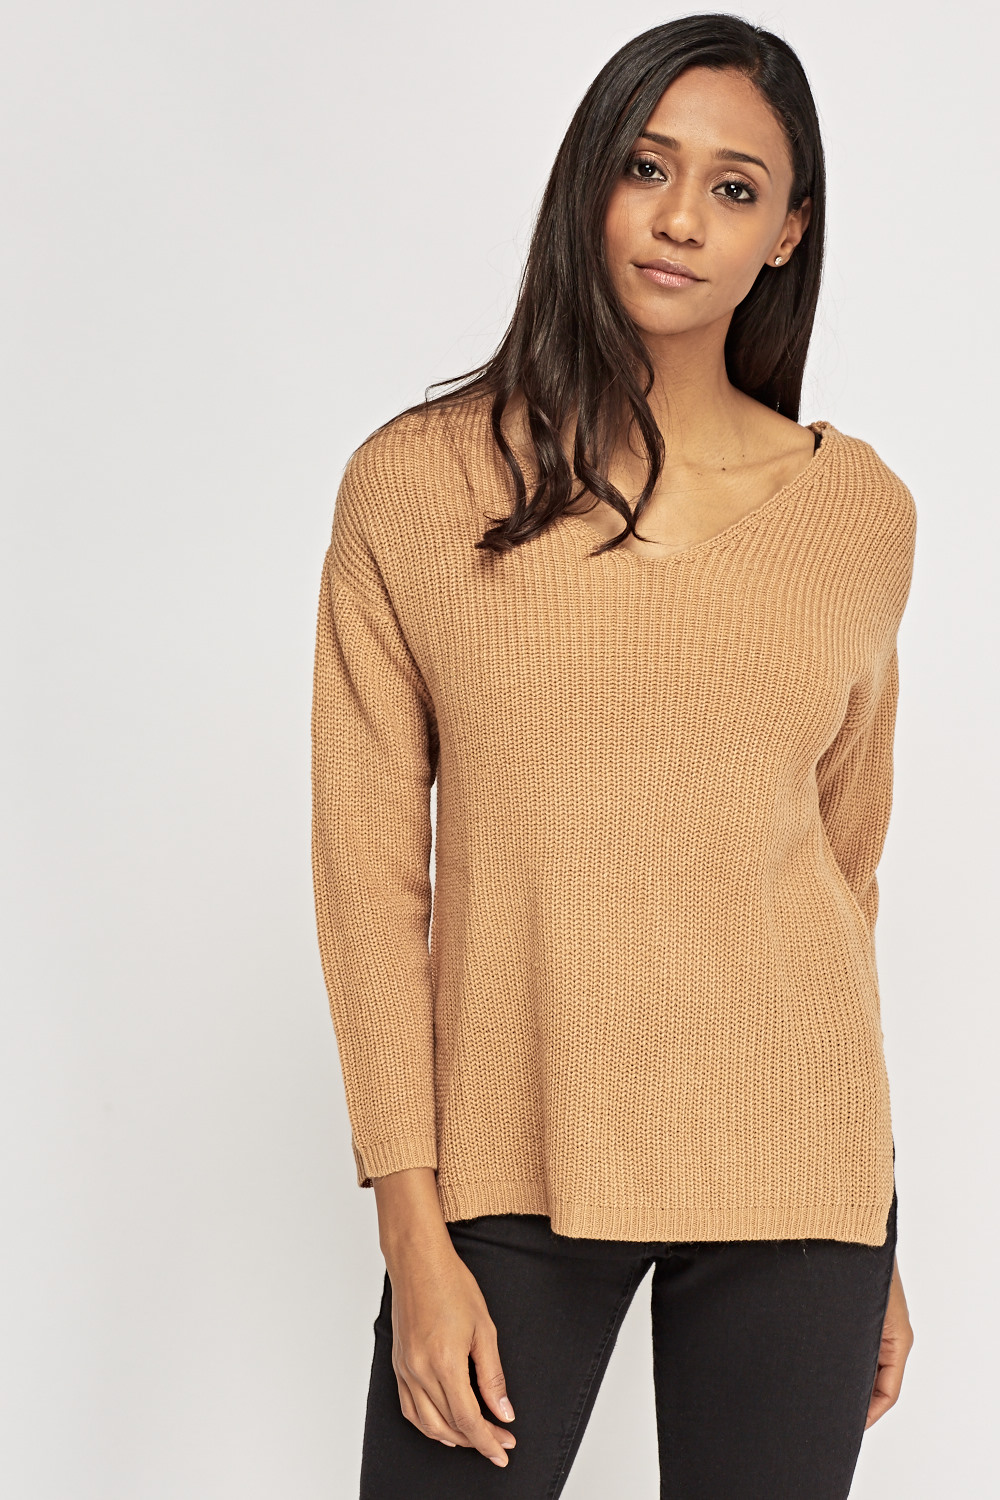 ccfa6093a0337d Ribbed V-Neck Knitted Jumper - Just £2